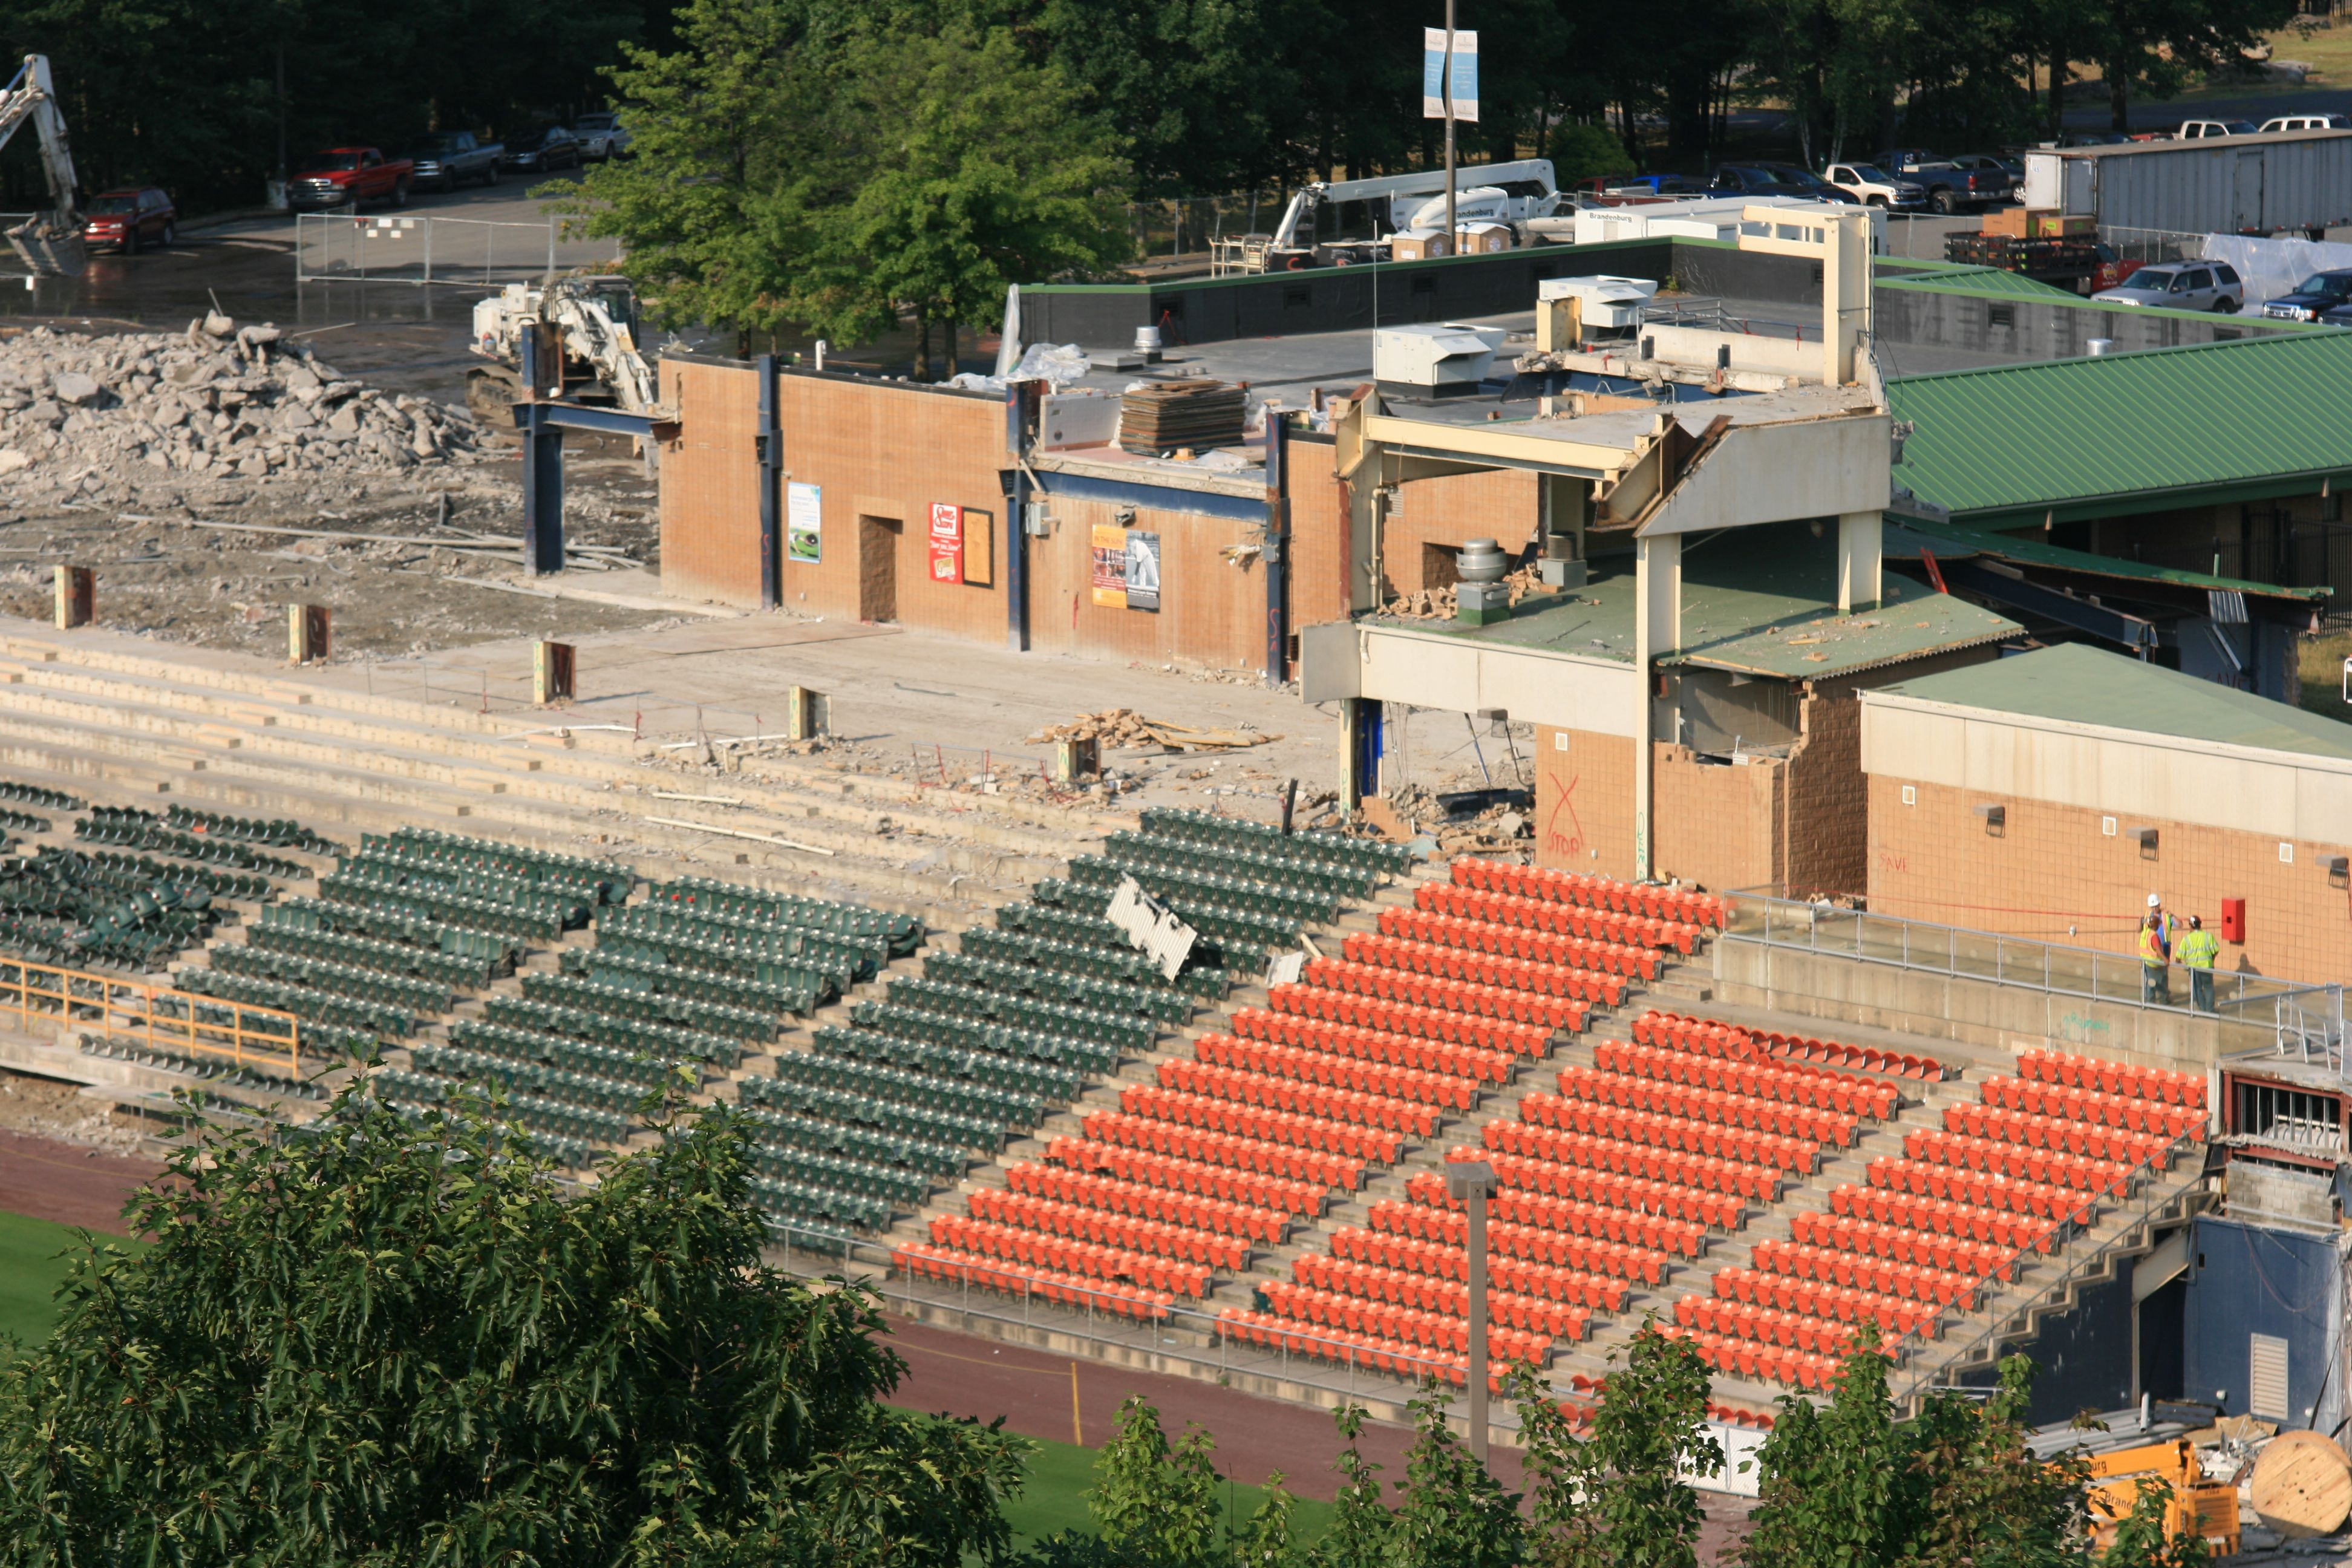 Another view of the third base side of the stadium under